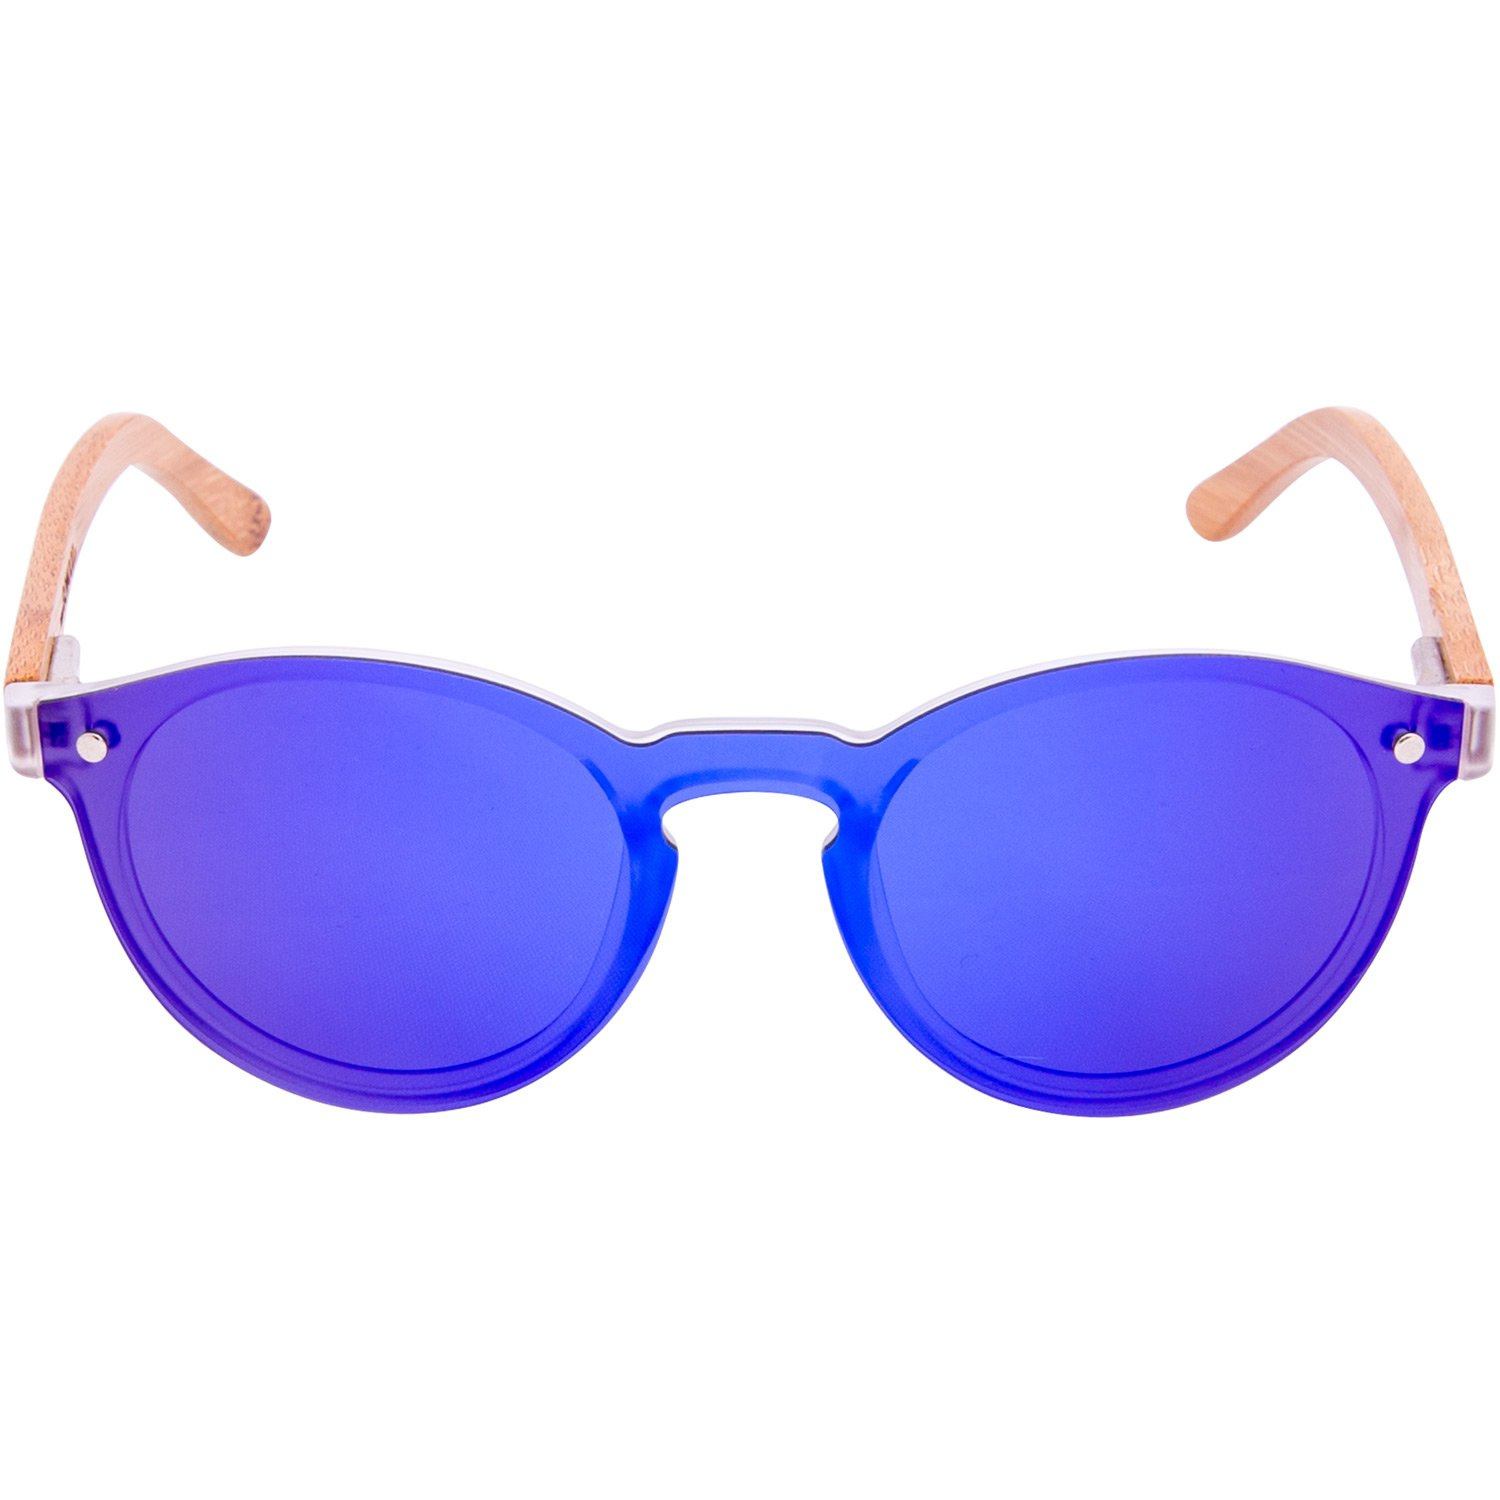 2f602f4fdf Amazon.com  Round Reflective Wood Sunglasses Bamboo For Women   Men with  Special One Piece Style Blue Mirrored Polarized Lens and with Wood Box   Clothing